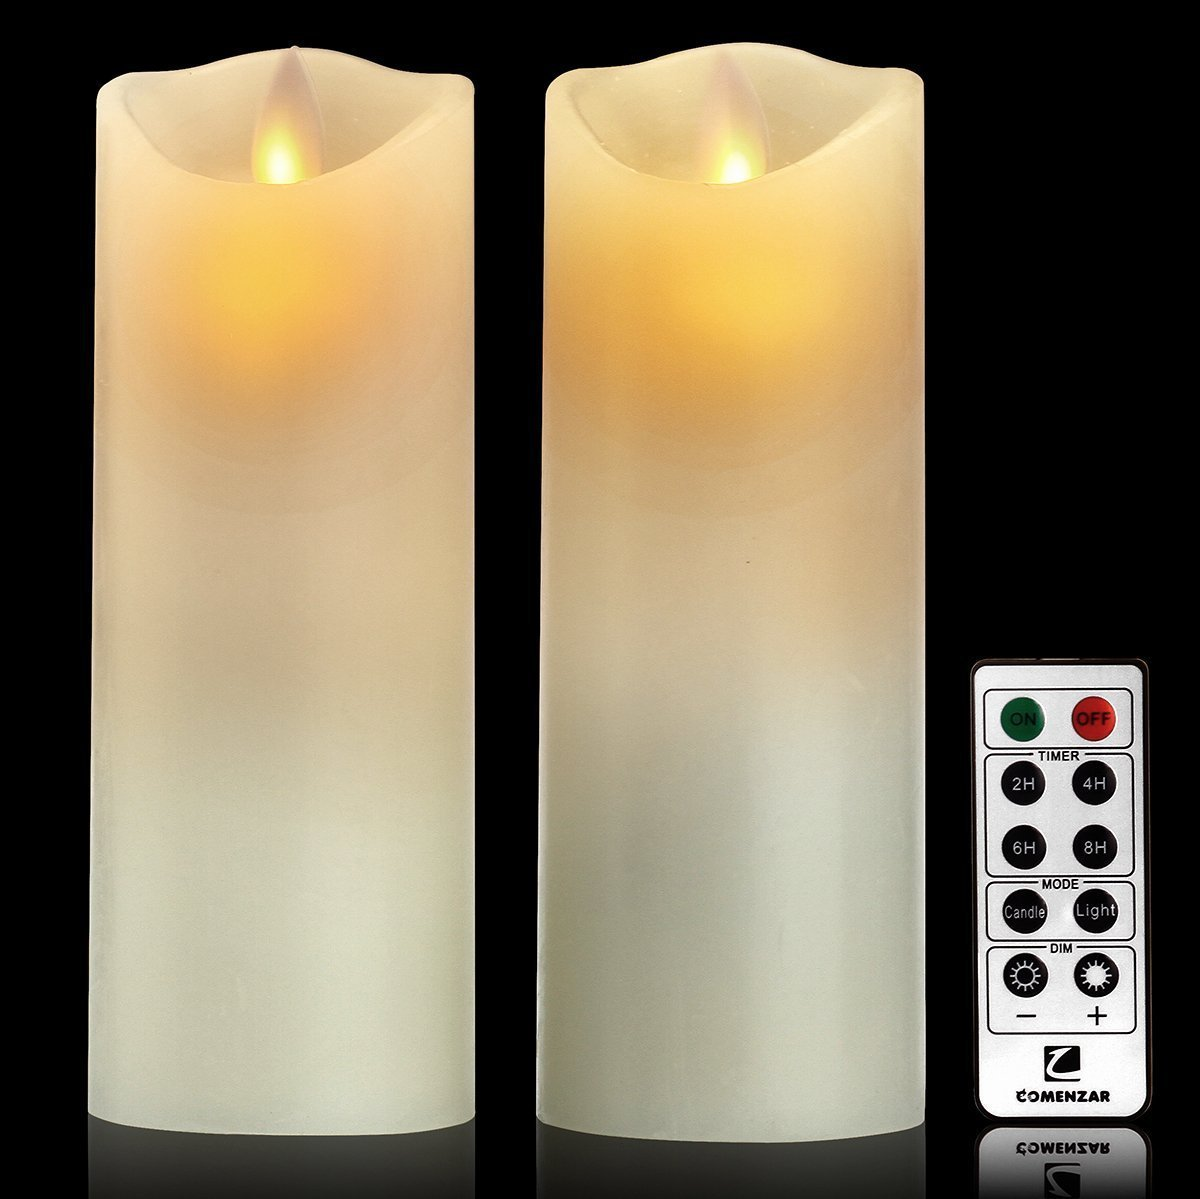 Candle Wall Sconce Set of 2 and Classic Pillar Real Flame-Effect Flameless LED Candles Set 6'' X 2.15'' with Remote and Timer Feature White Color - Set of 2 Metal Iron Glass Home Decor Room Bronze by Piller (Image #4)